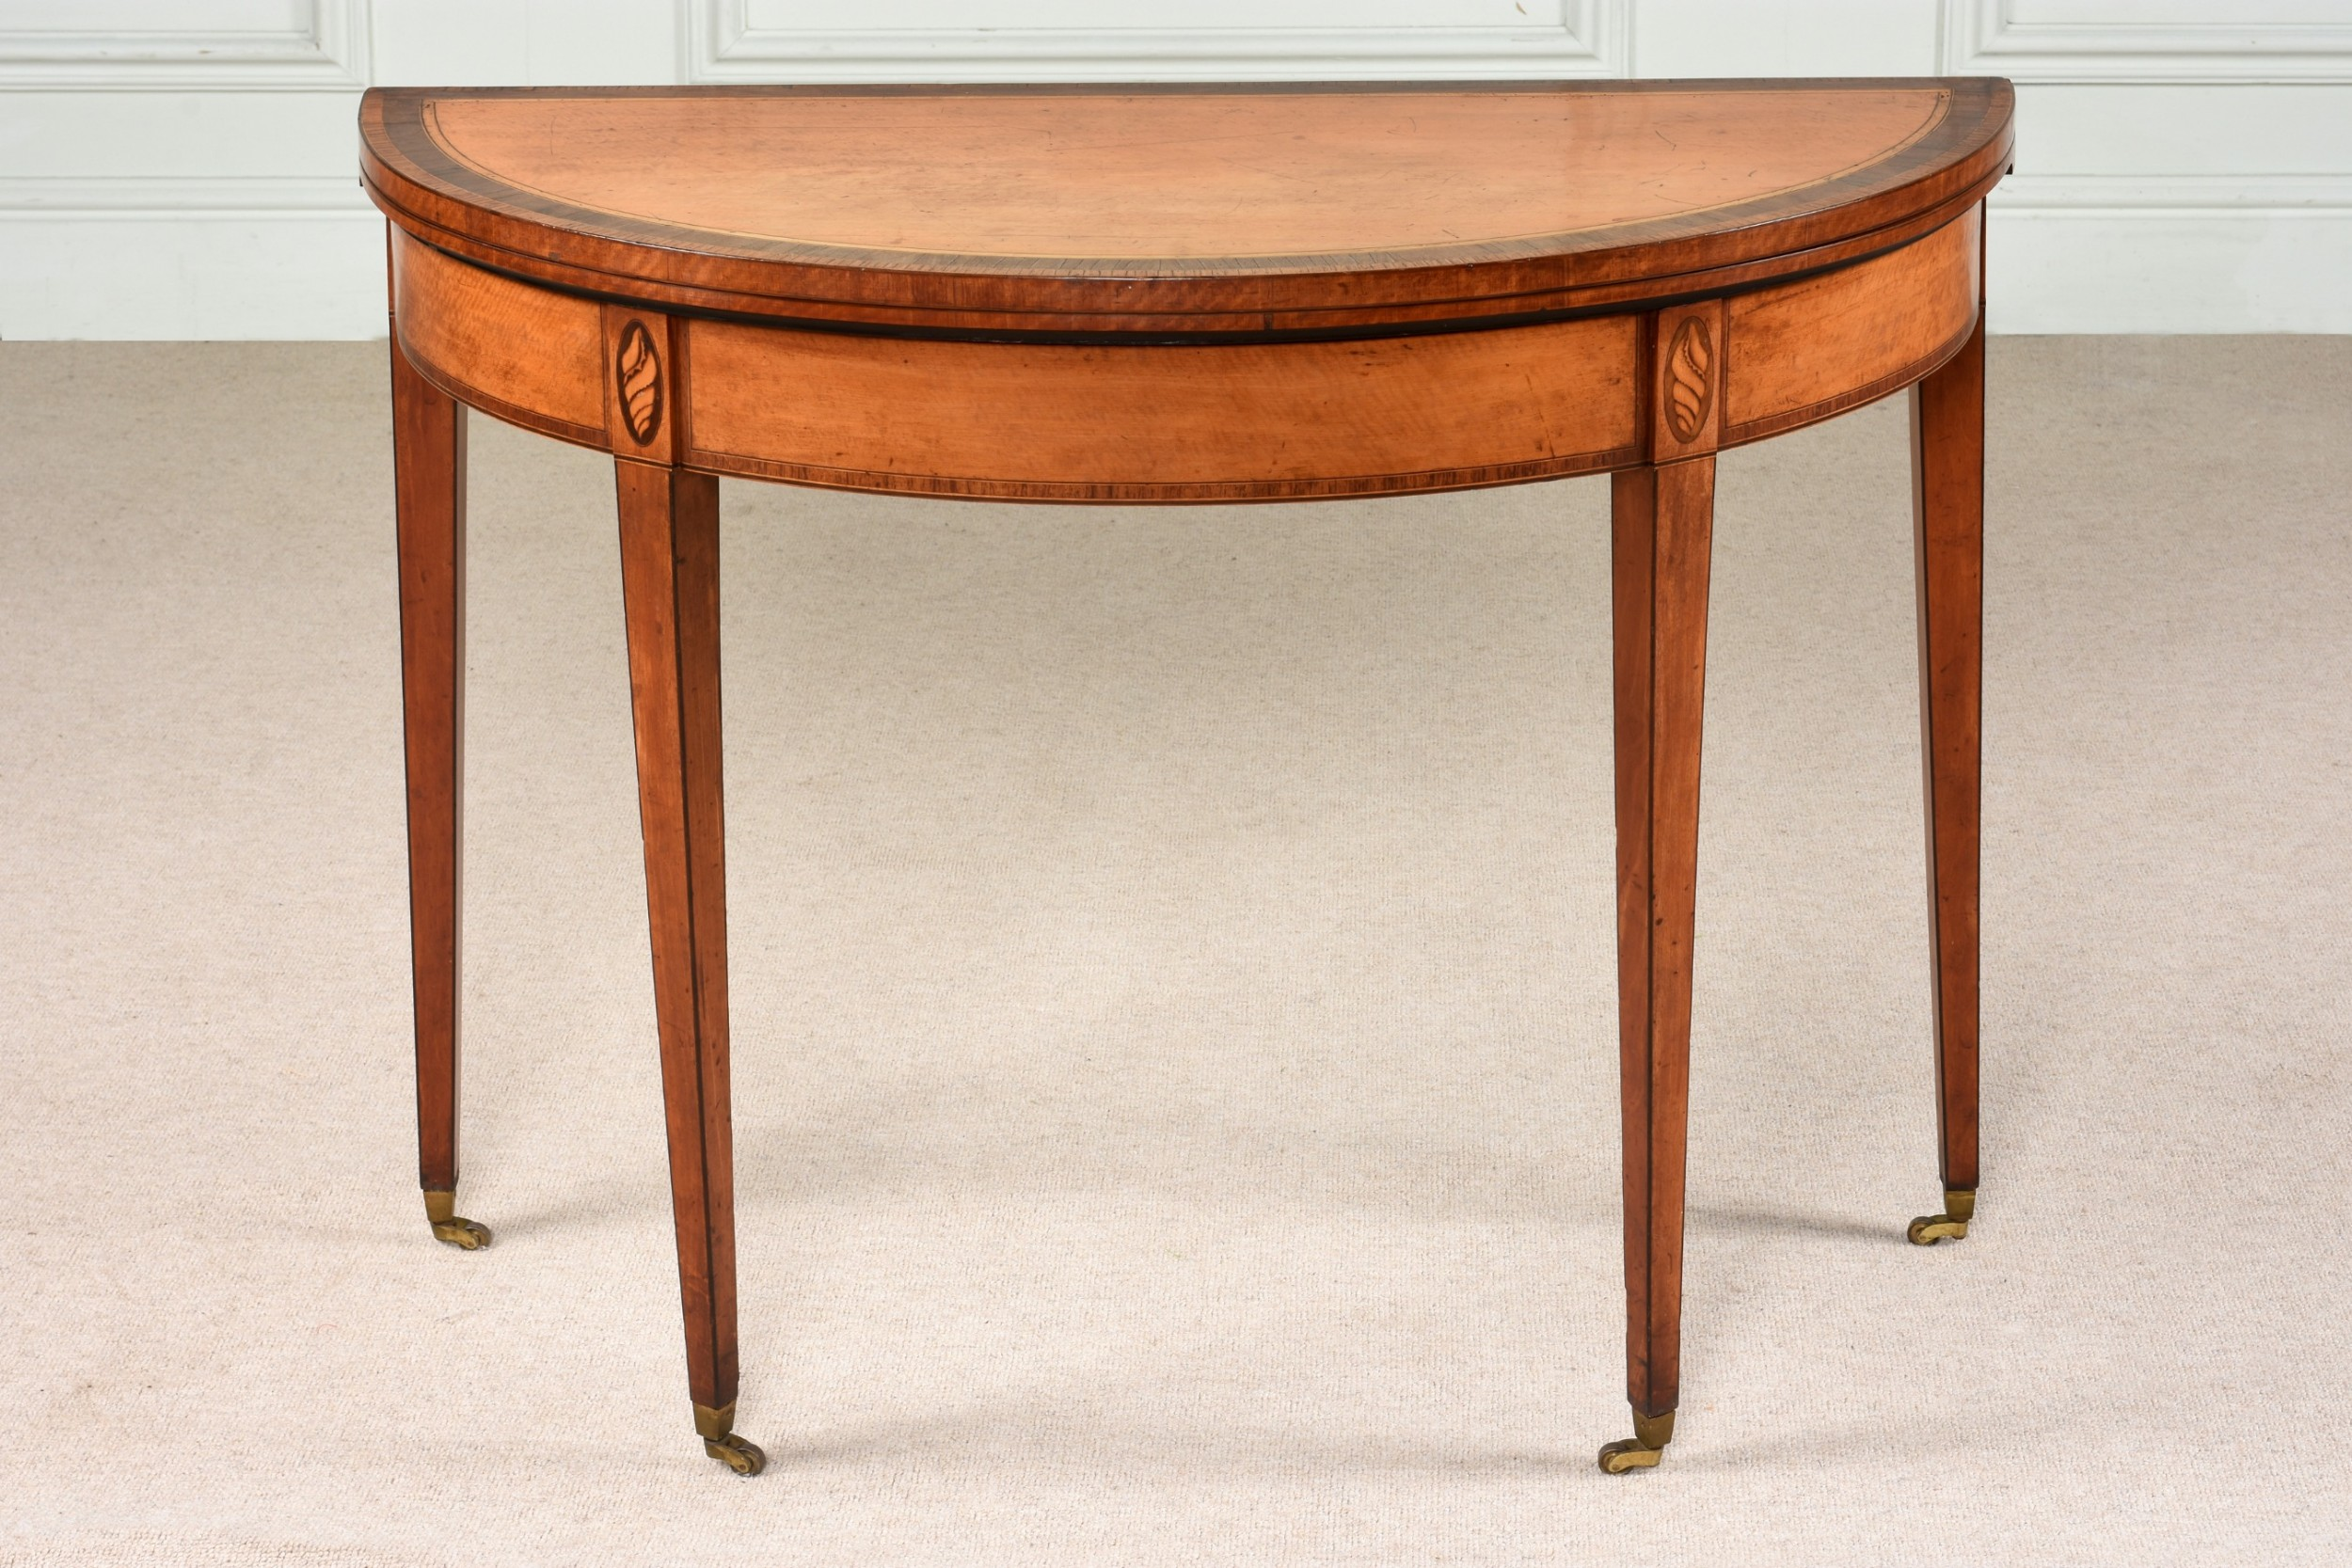 superb 18th century george iii sheraton demilune card table c1780